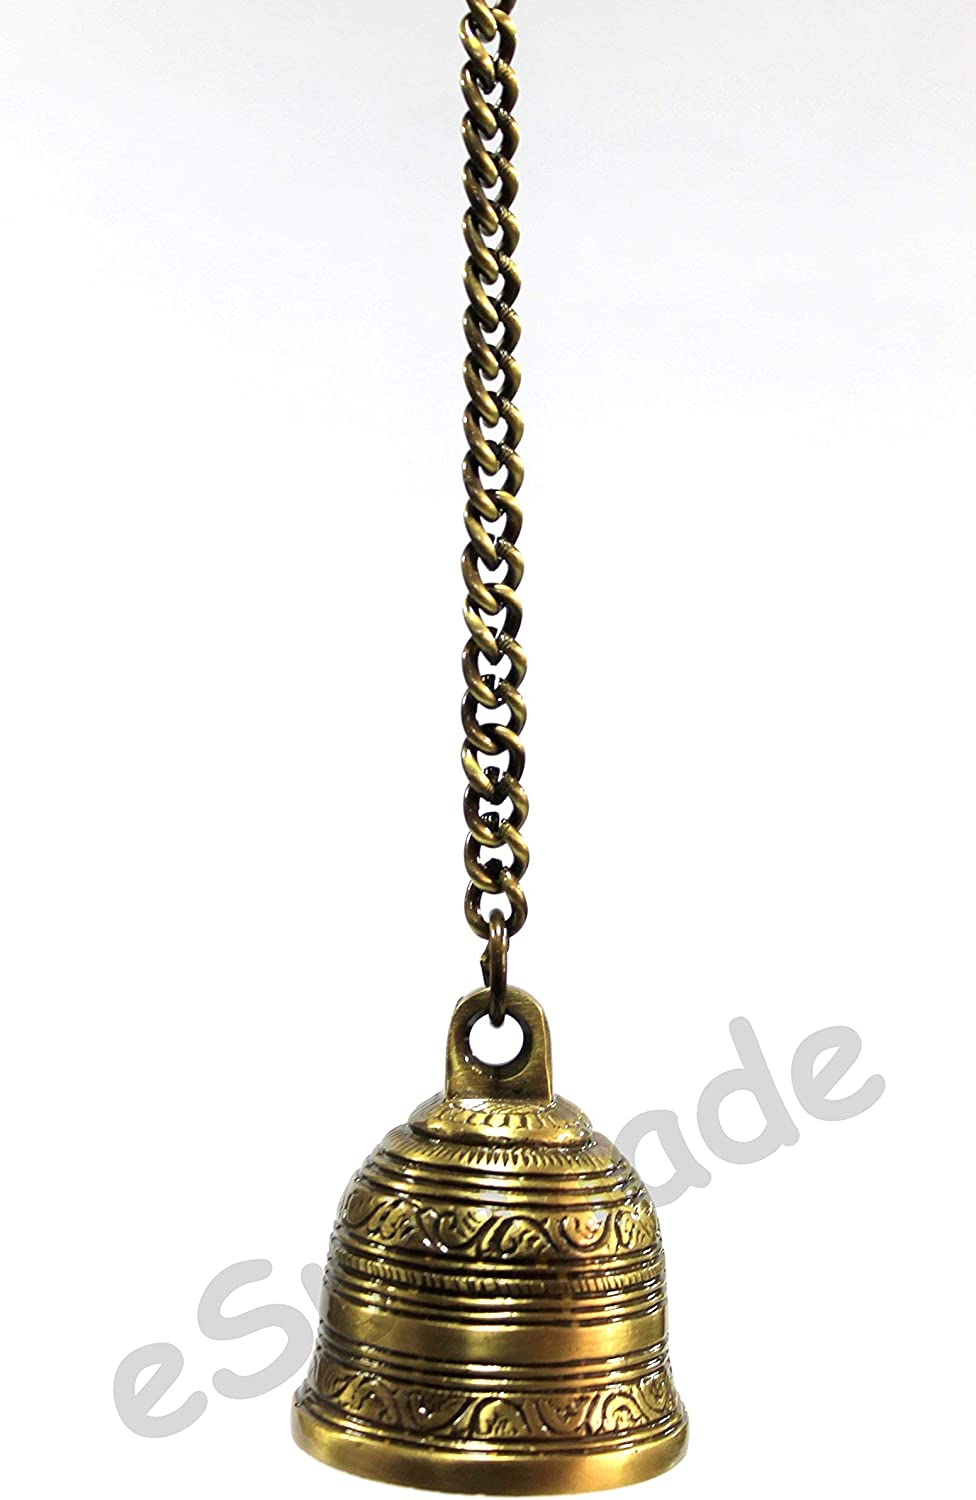 Ethnic Indian Handcrafted Brass Temple Bell with Chain Brass Hanging Bell Home Decor Door Decor eSplanade Pooja Accessories